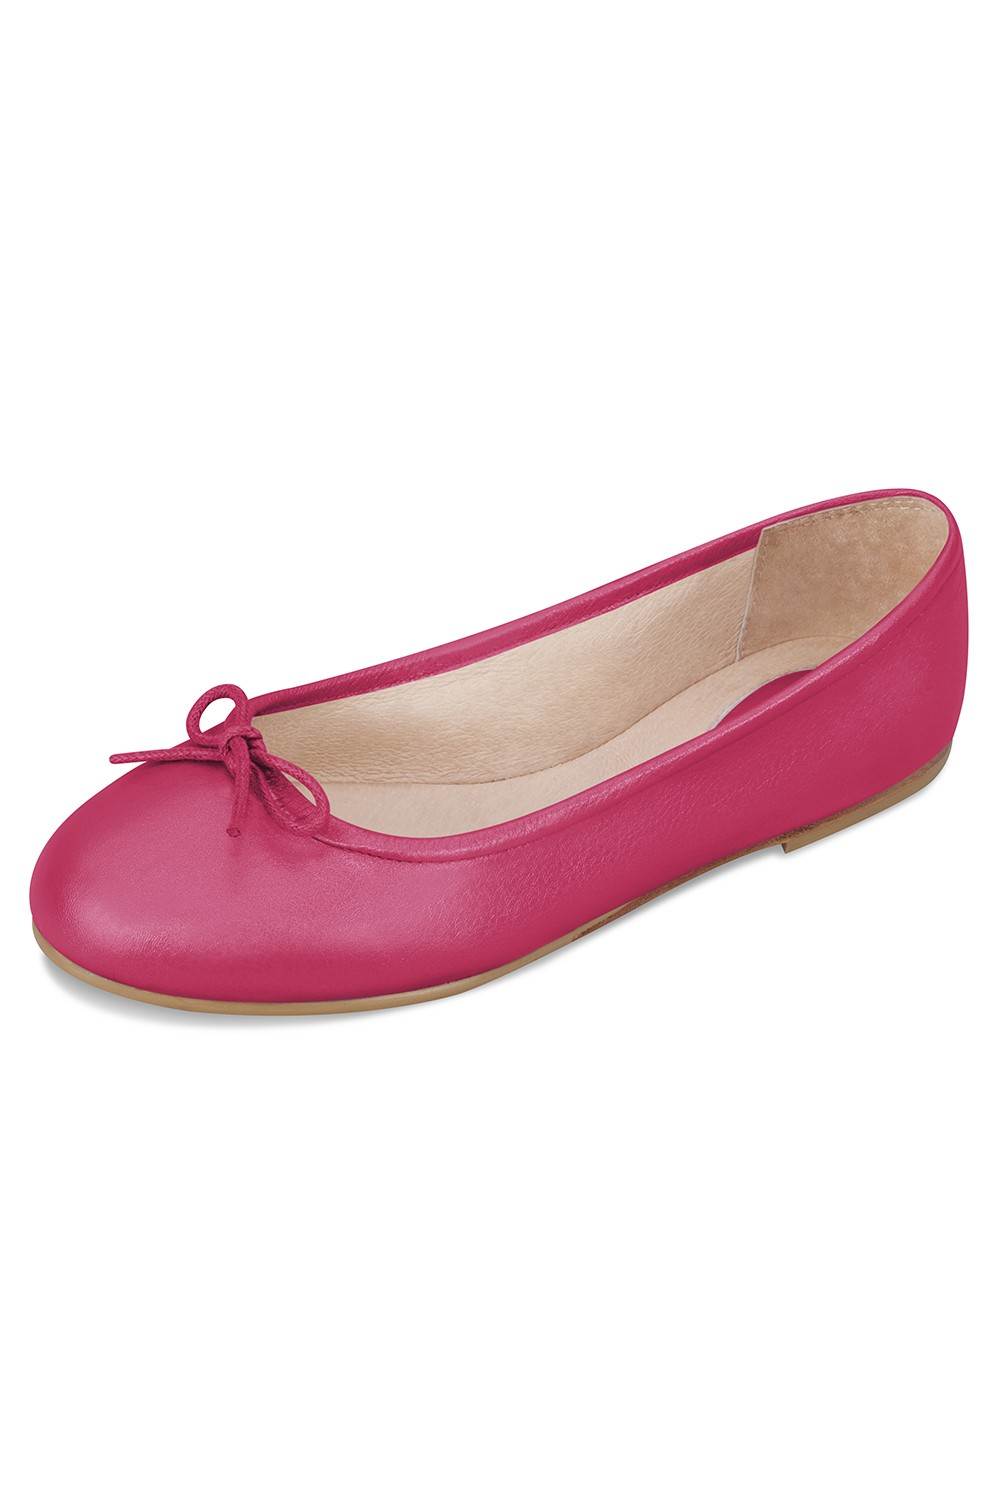 Arabella - Niñas Girls Fashion Shoes